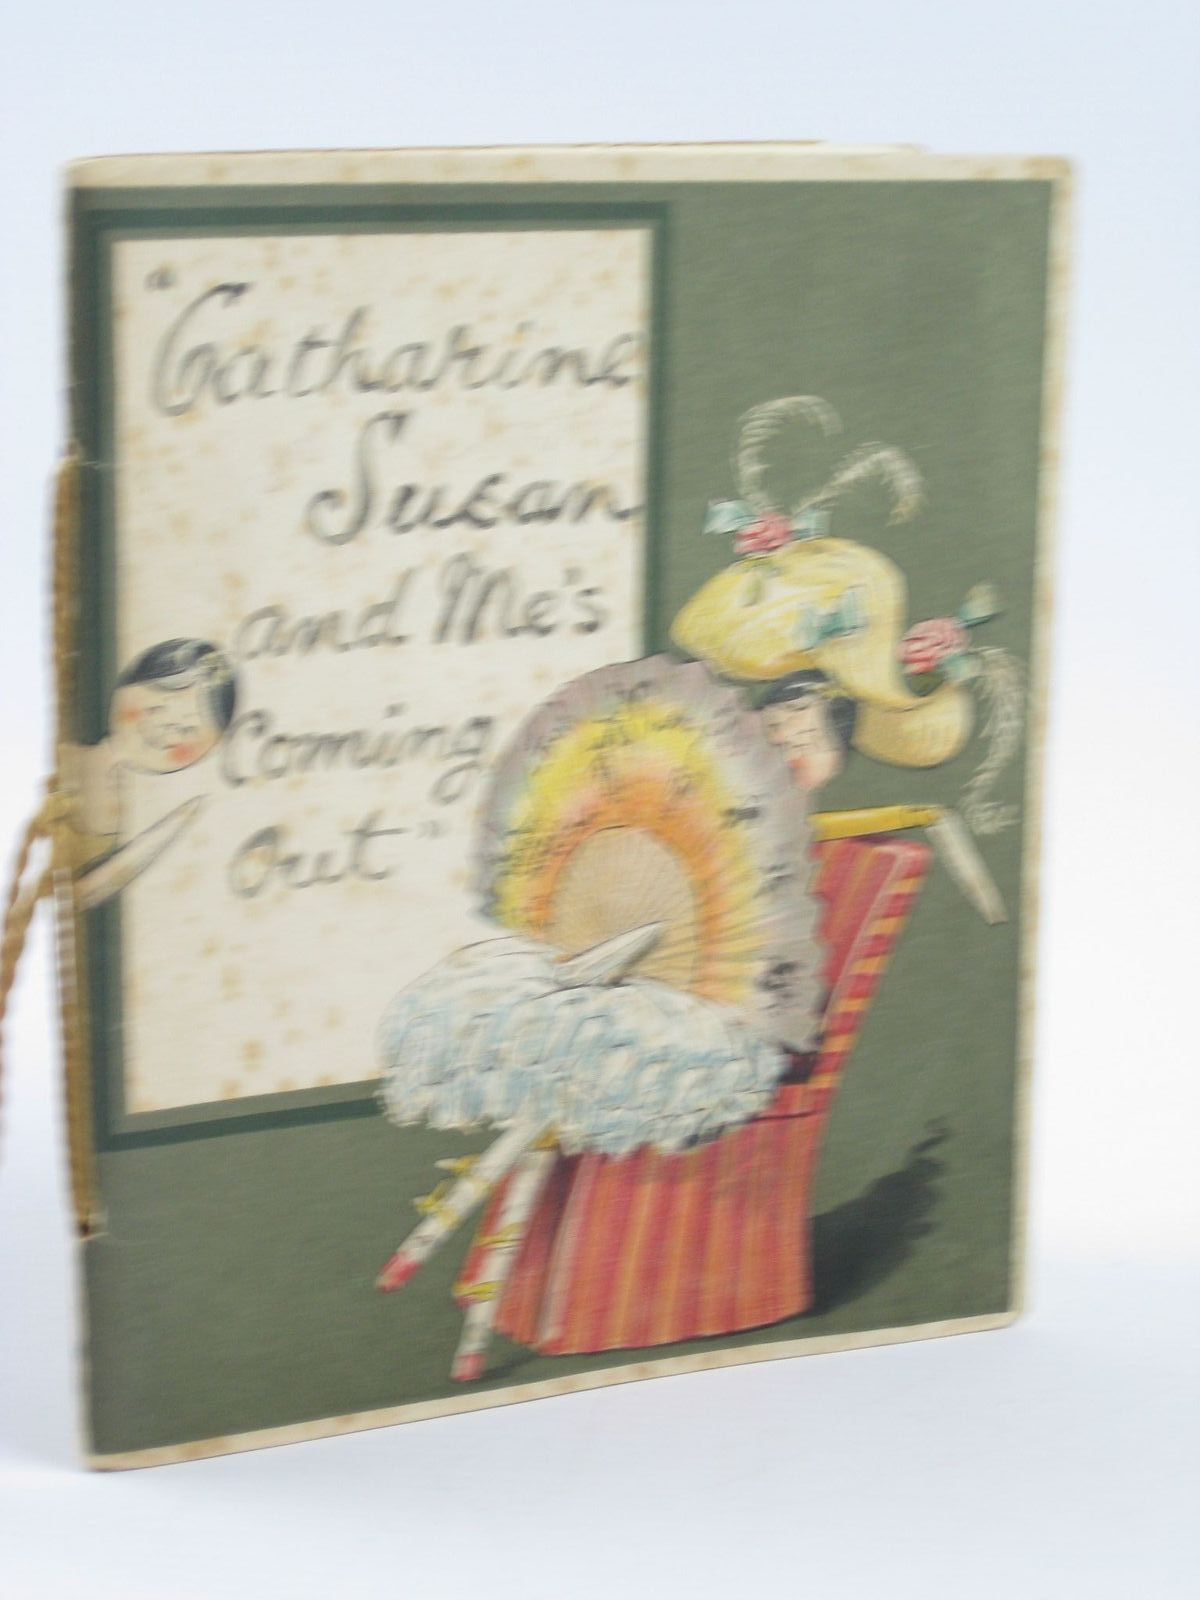 Photo of CATHARINE SUSAN AND ME'S COMING OUT written by Ainslie, Kathleen illustrated by Ainslie, Kathleen published by Castell Brothers Ltd. (STOCK CODE: 1311053)  for sale by Stella & Rose's Books